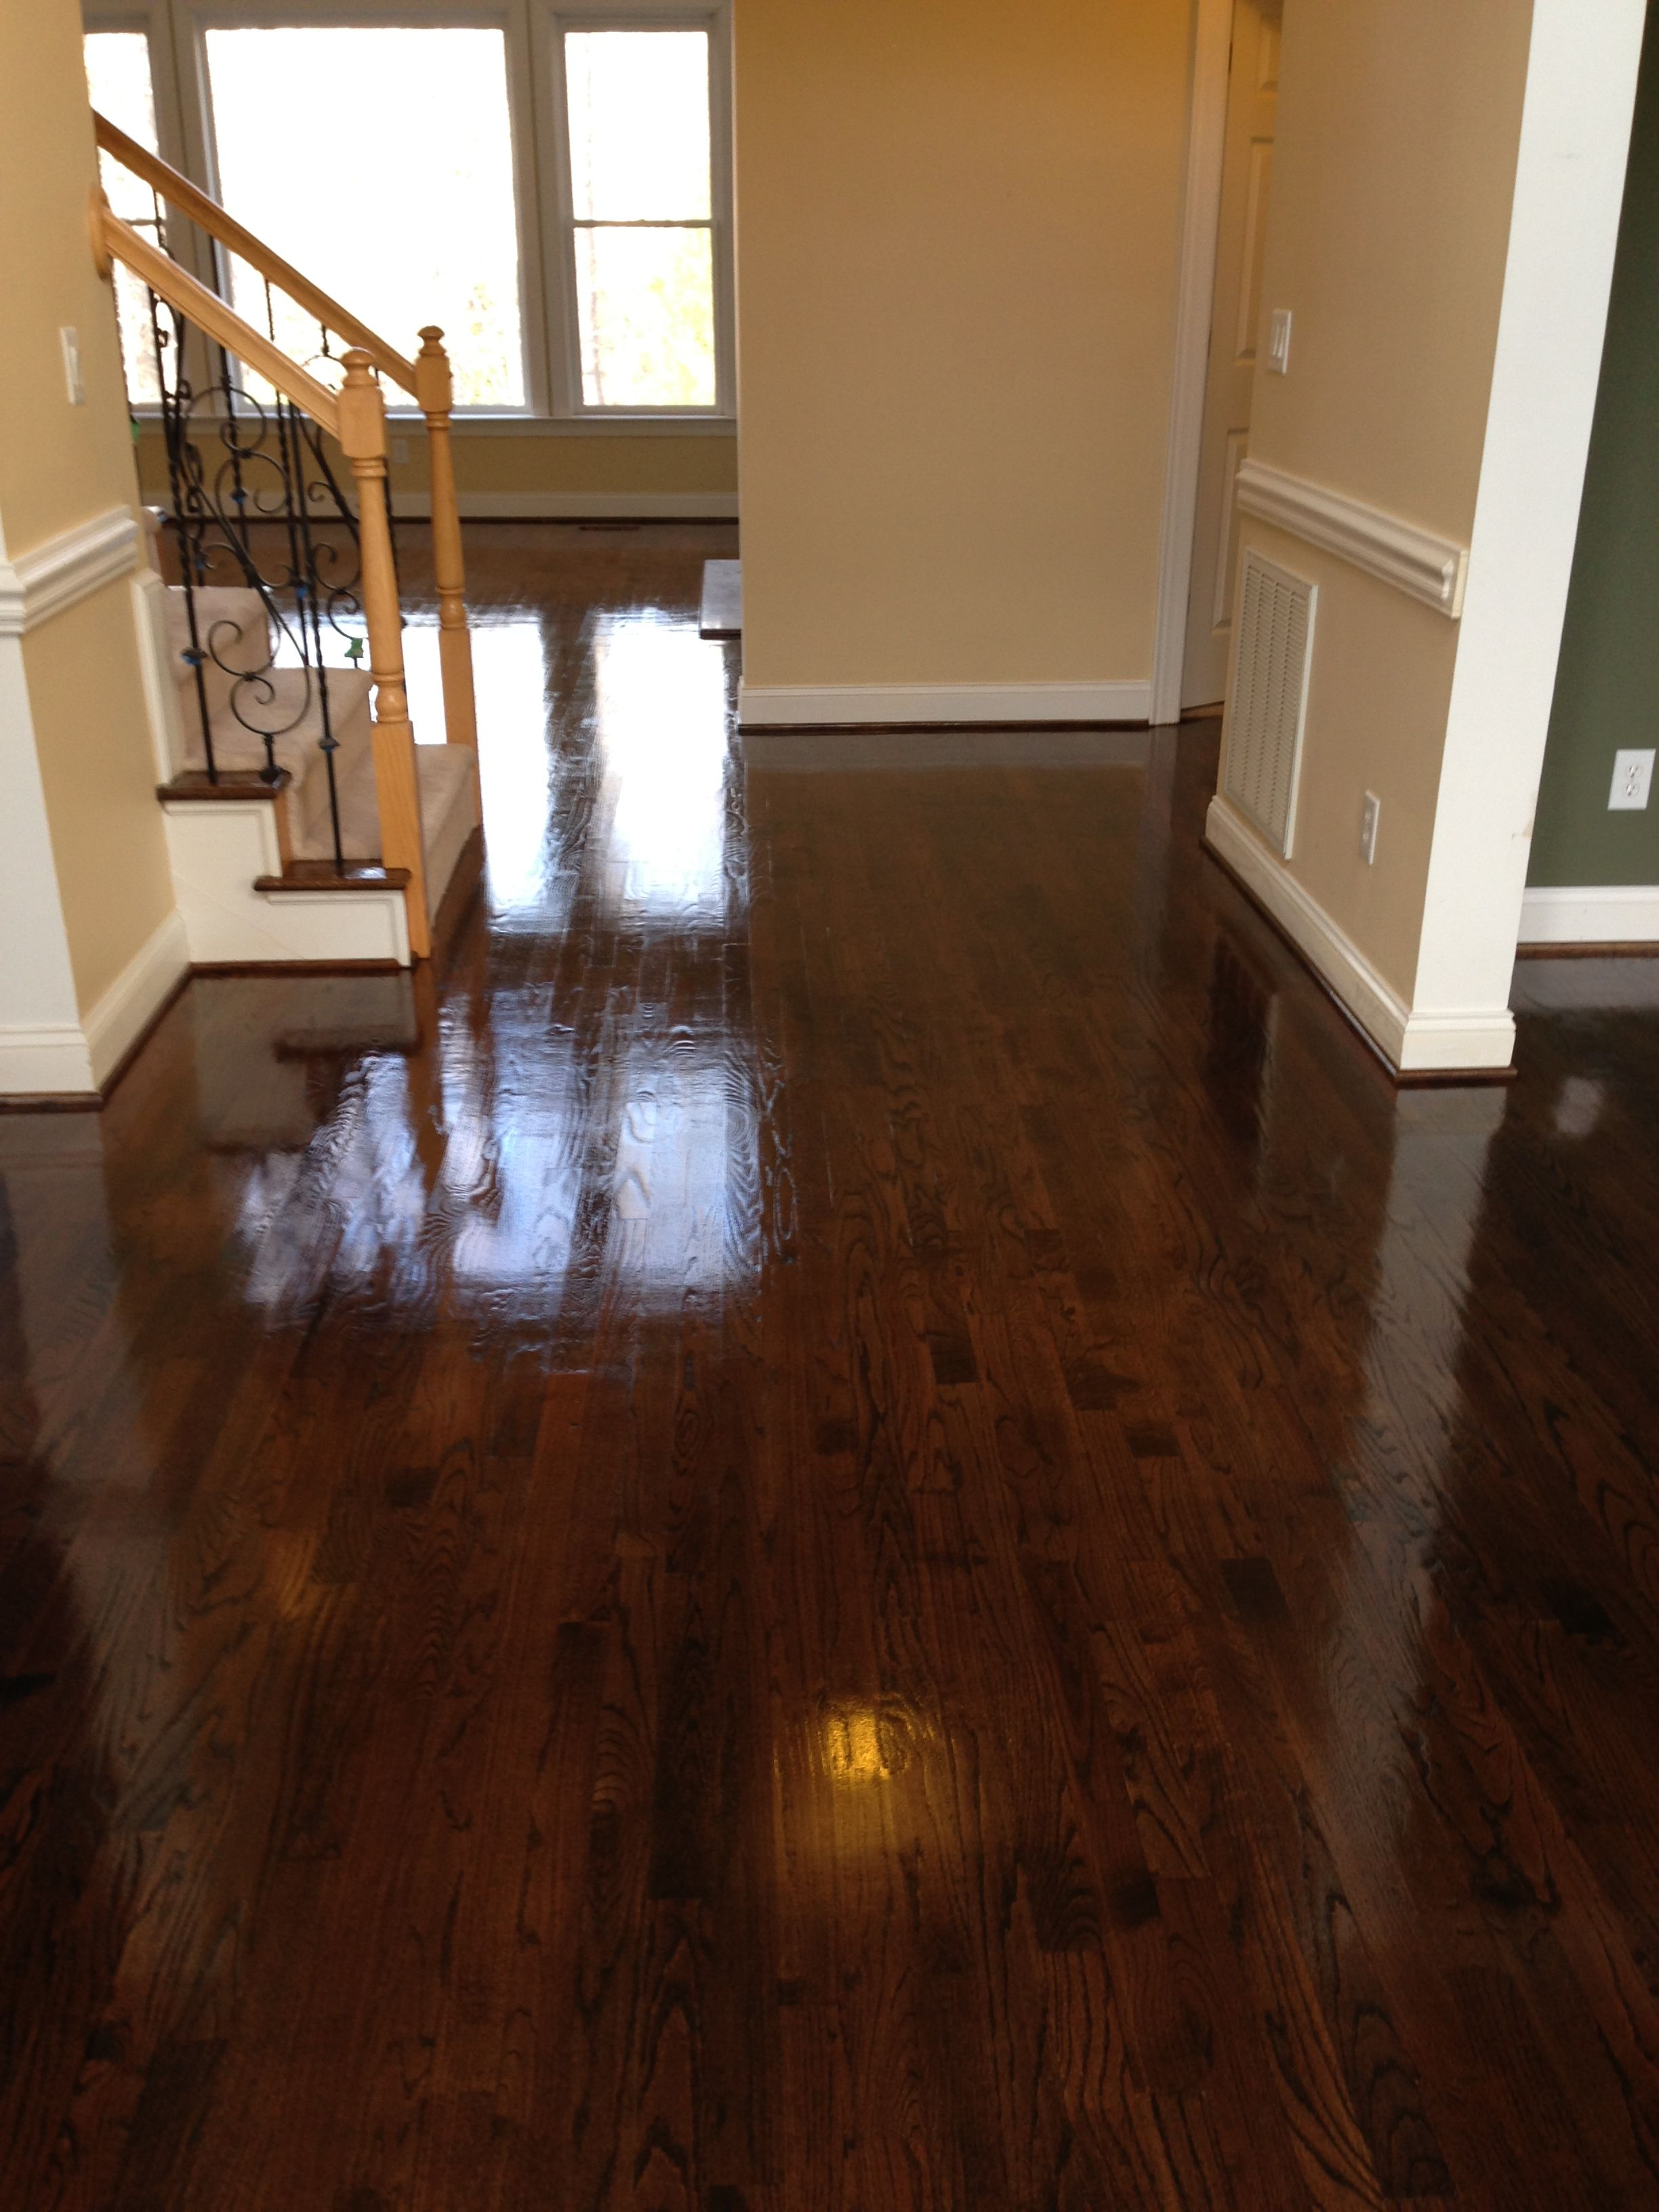 Walnut Kitchen Floor Red Oak Hardwood Floors After Three Coats Of Polyurethane Semi